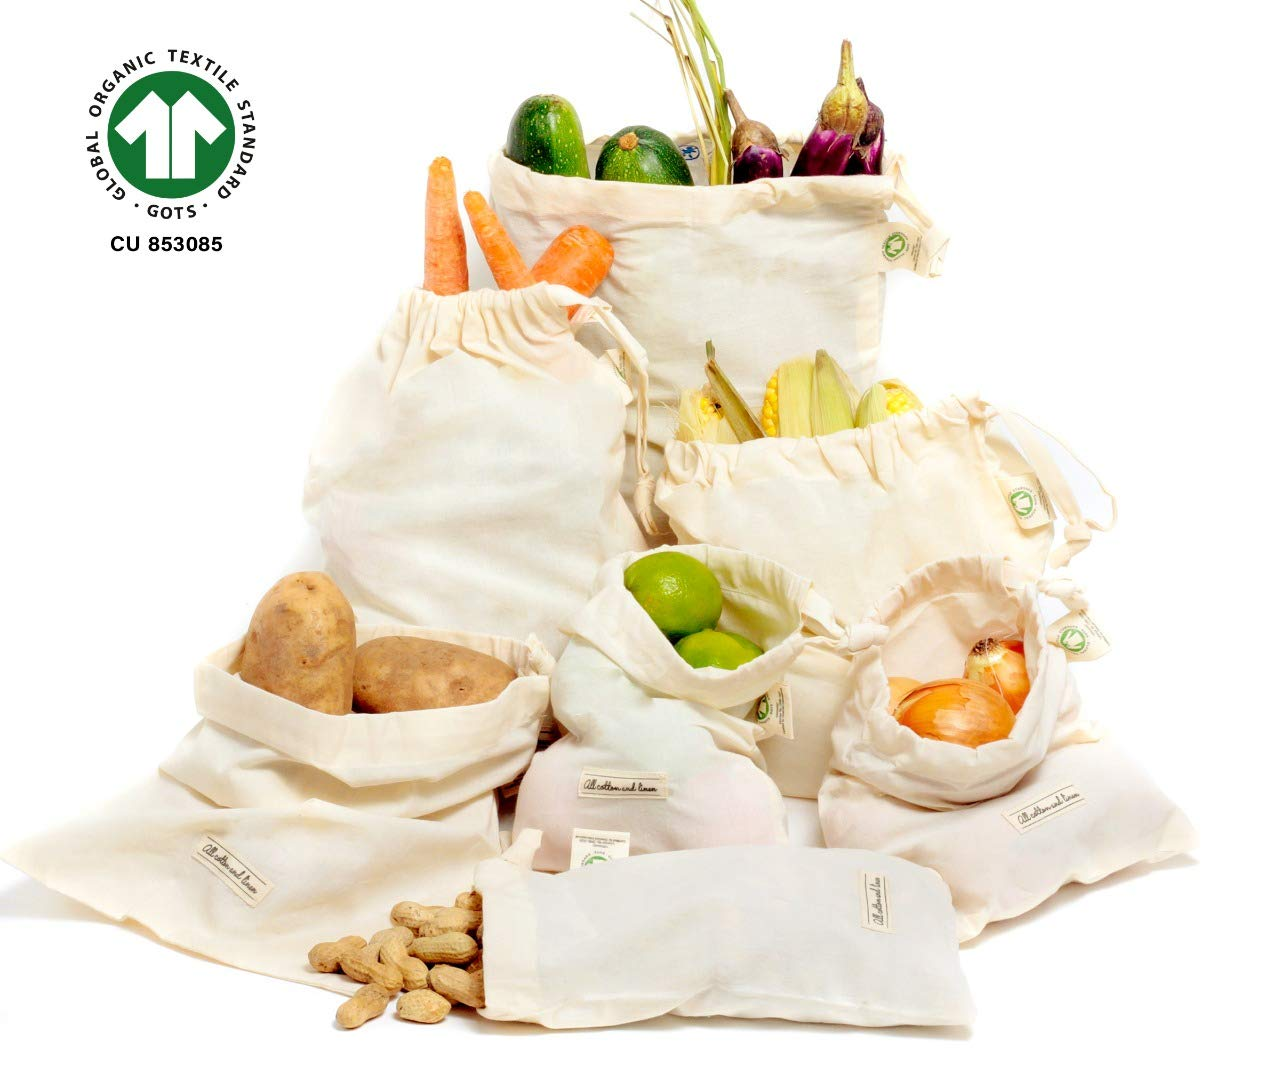 Small Cotton Muslin Bags - Cloth Produce Bags Organic - Cotton Produce Bags - Small Muslin Bags - Muslin Grocery Bags - Muslin Produce Bags, Set of 7 Small Bag (2 M, 3 S, 2 XS) Washable, Biodegradable